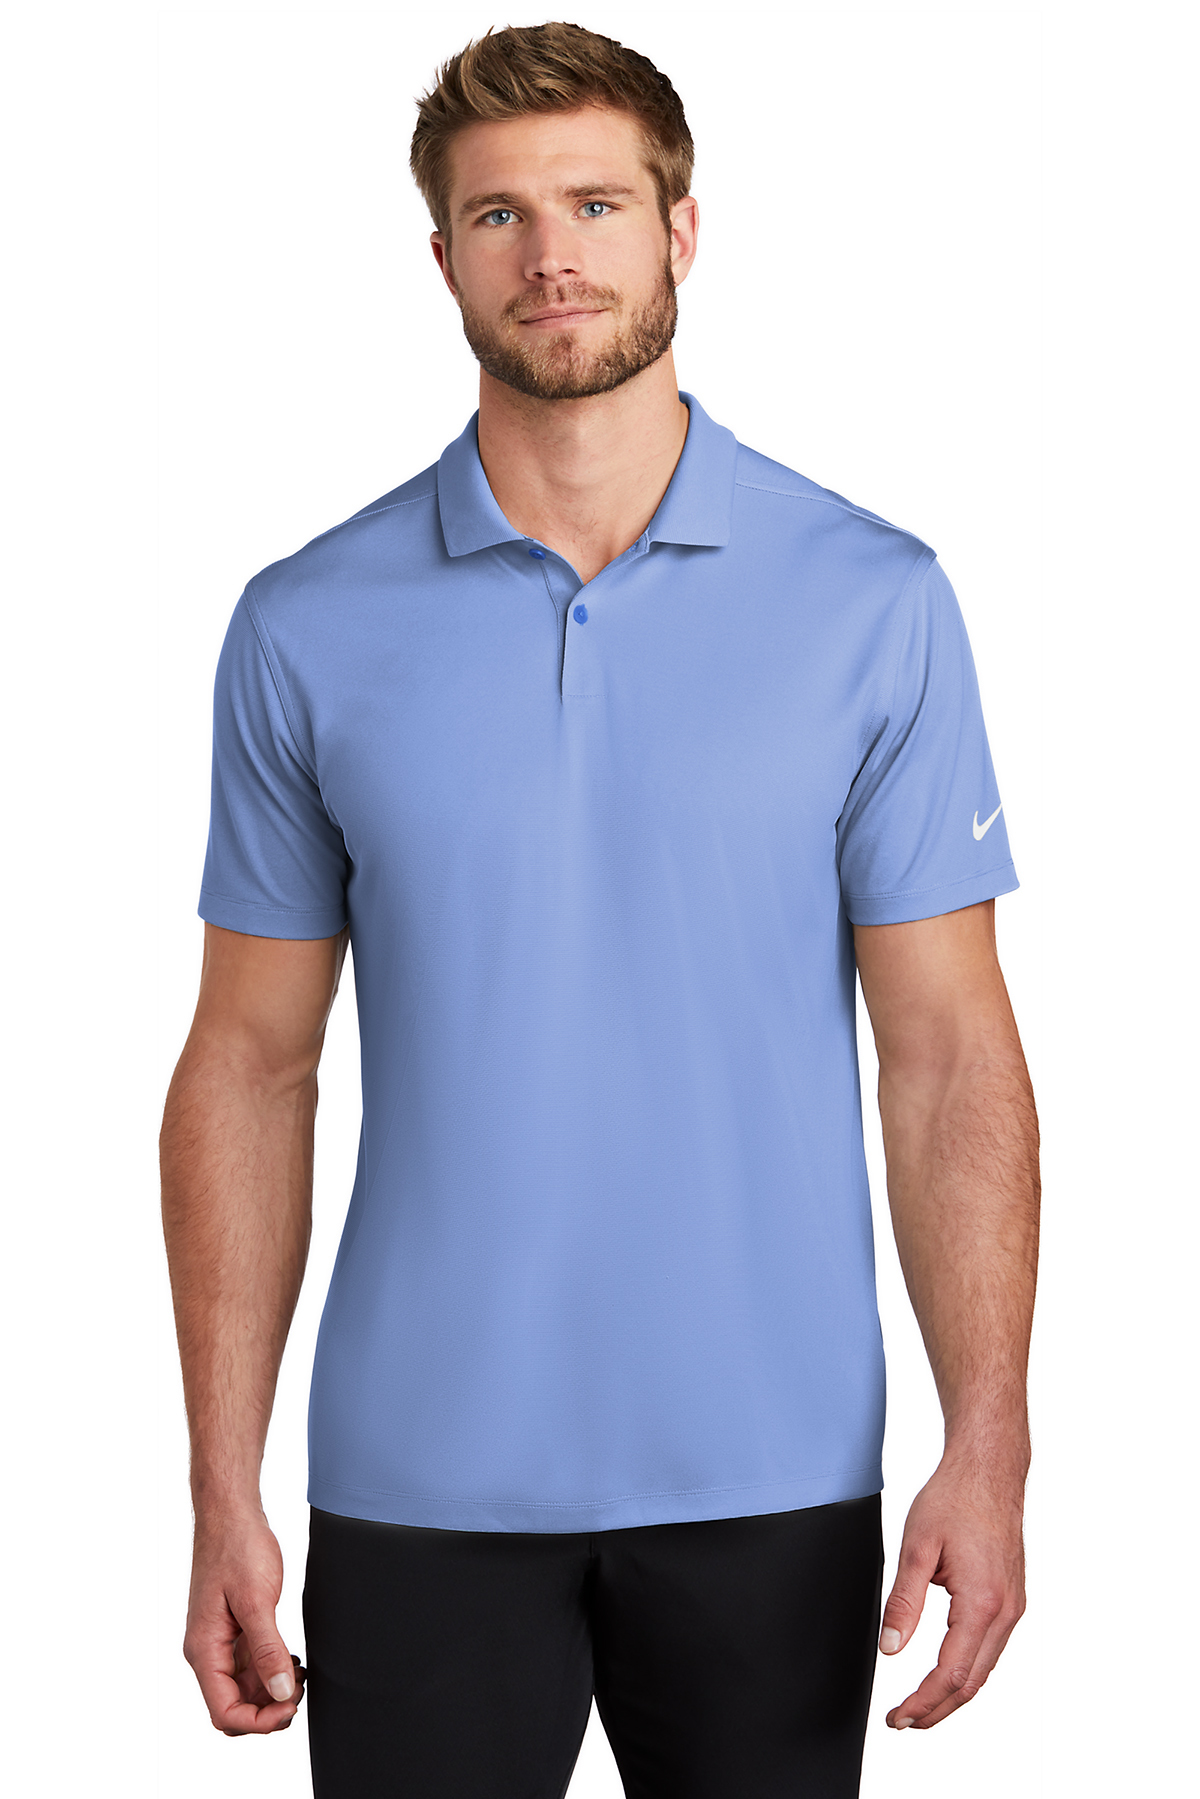 Nike NKBV6041 - Dry Victory Textured Polo